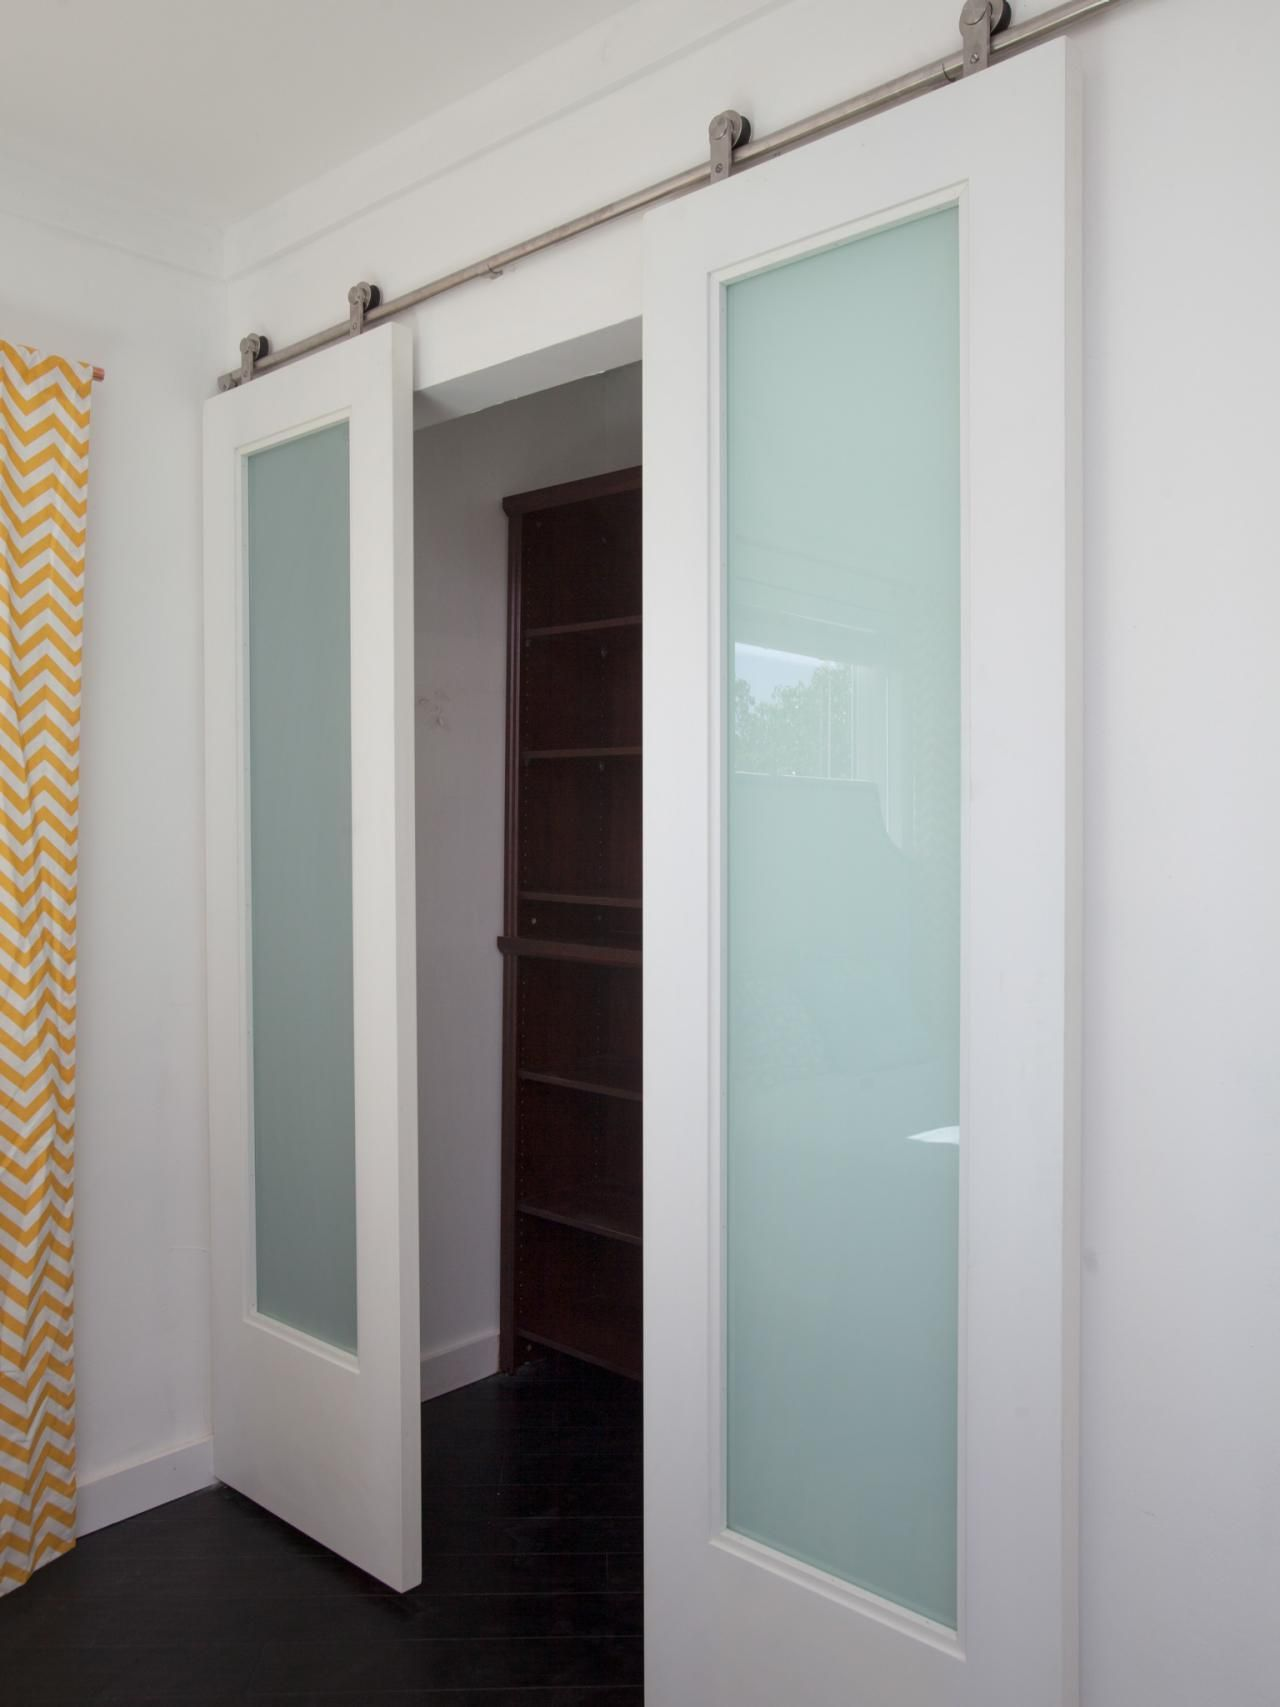 Sliding Closet Doors Design Ideas And Options: Flipping The Block: Tour The Finished Master Bedrooms